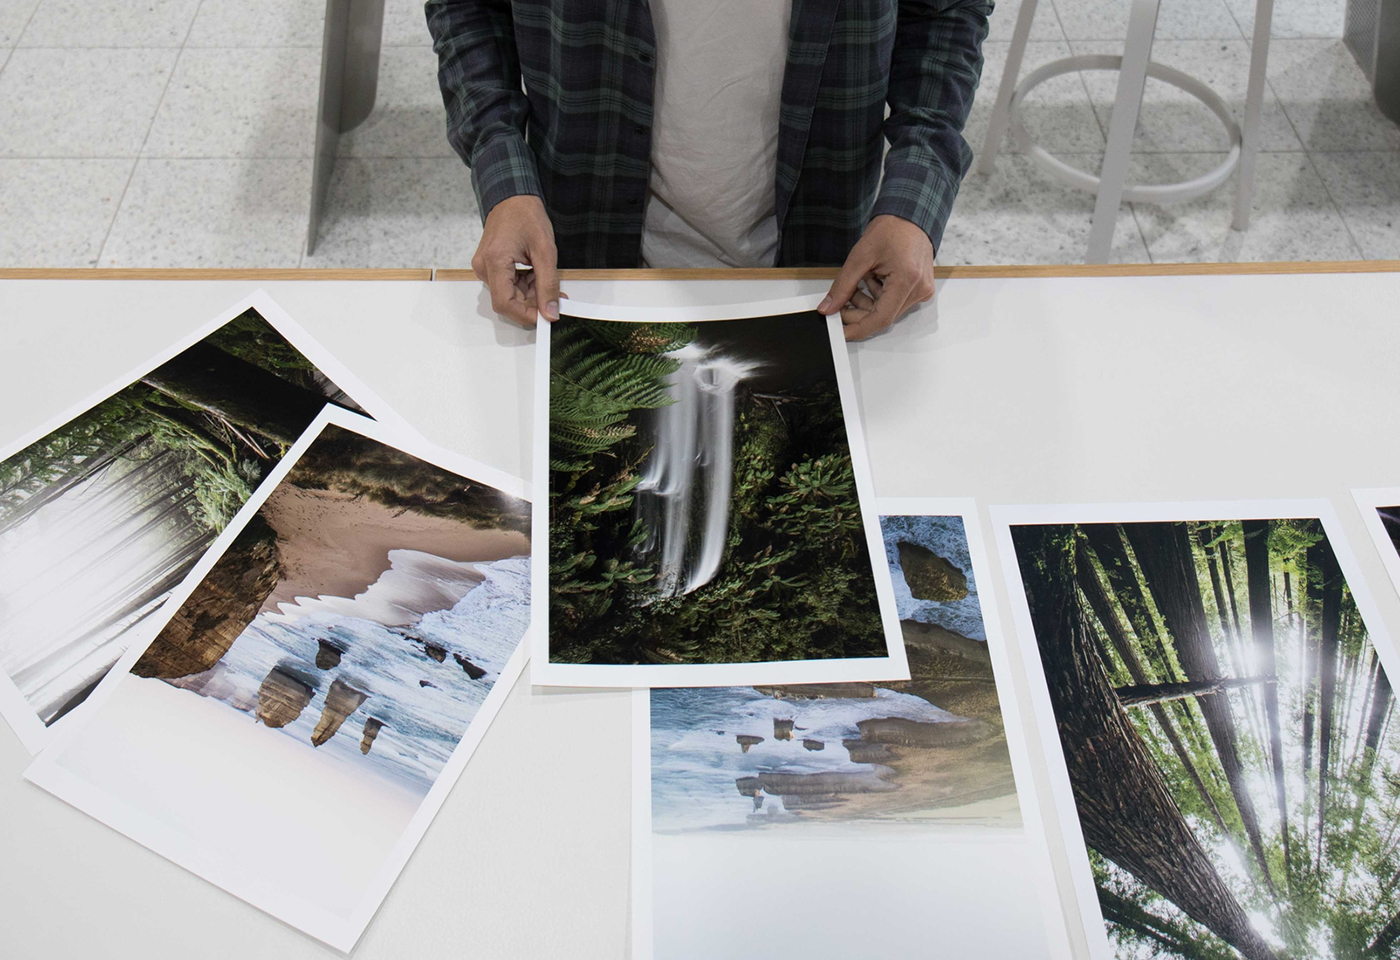 Photo of print outs by Kirk Richard